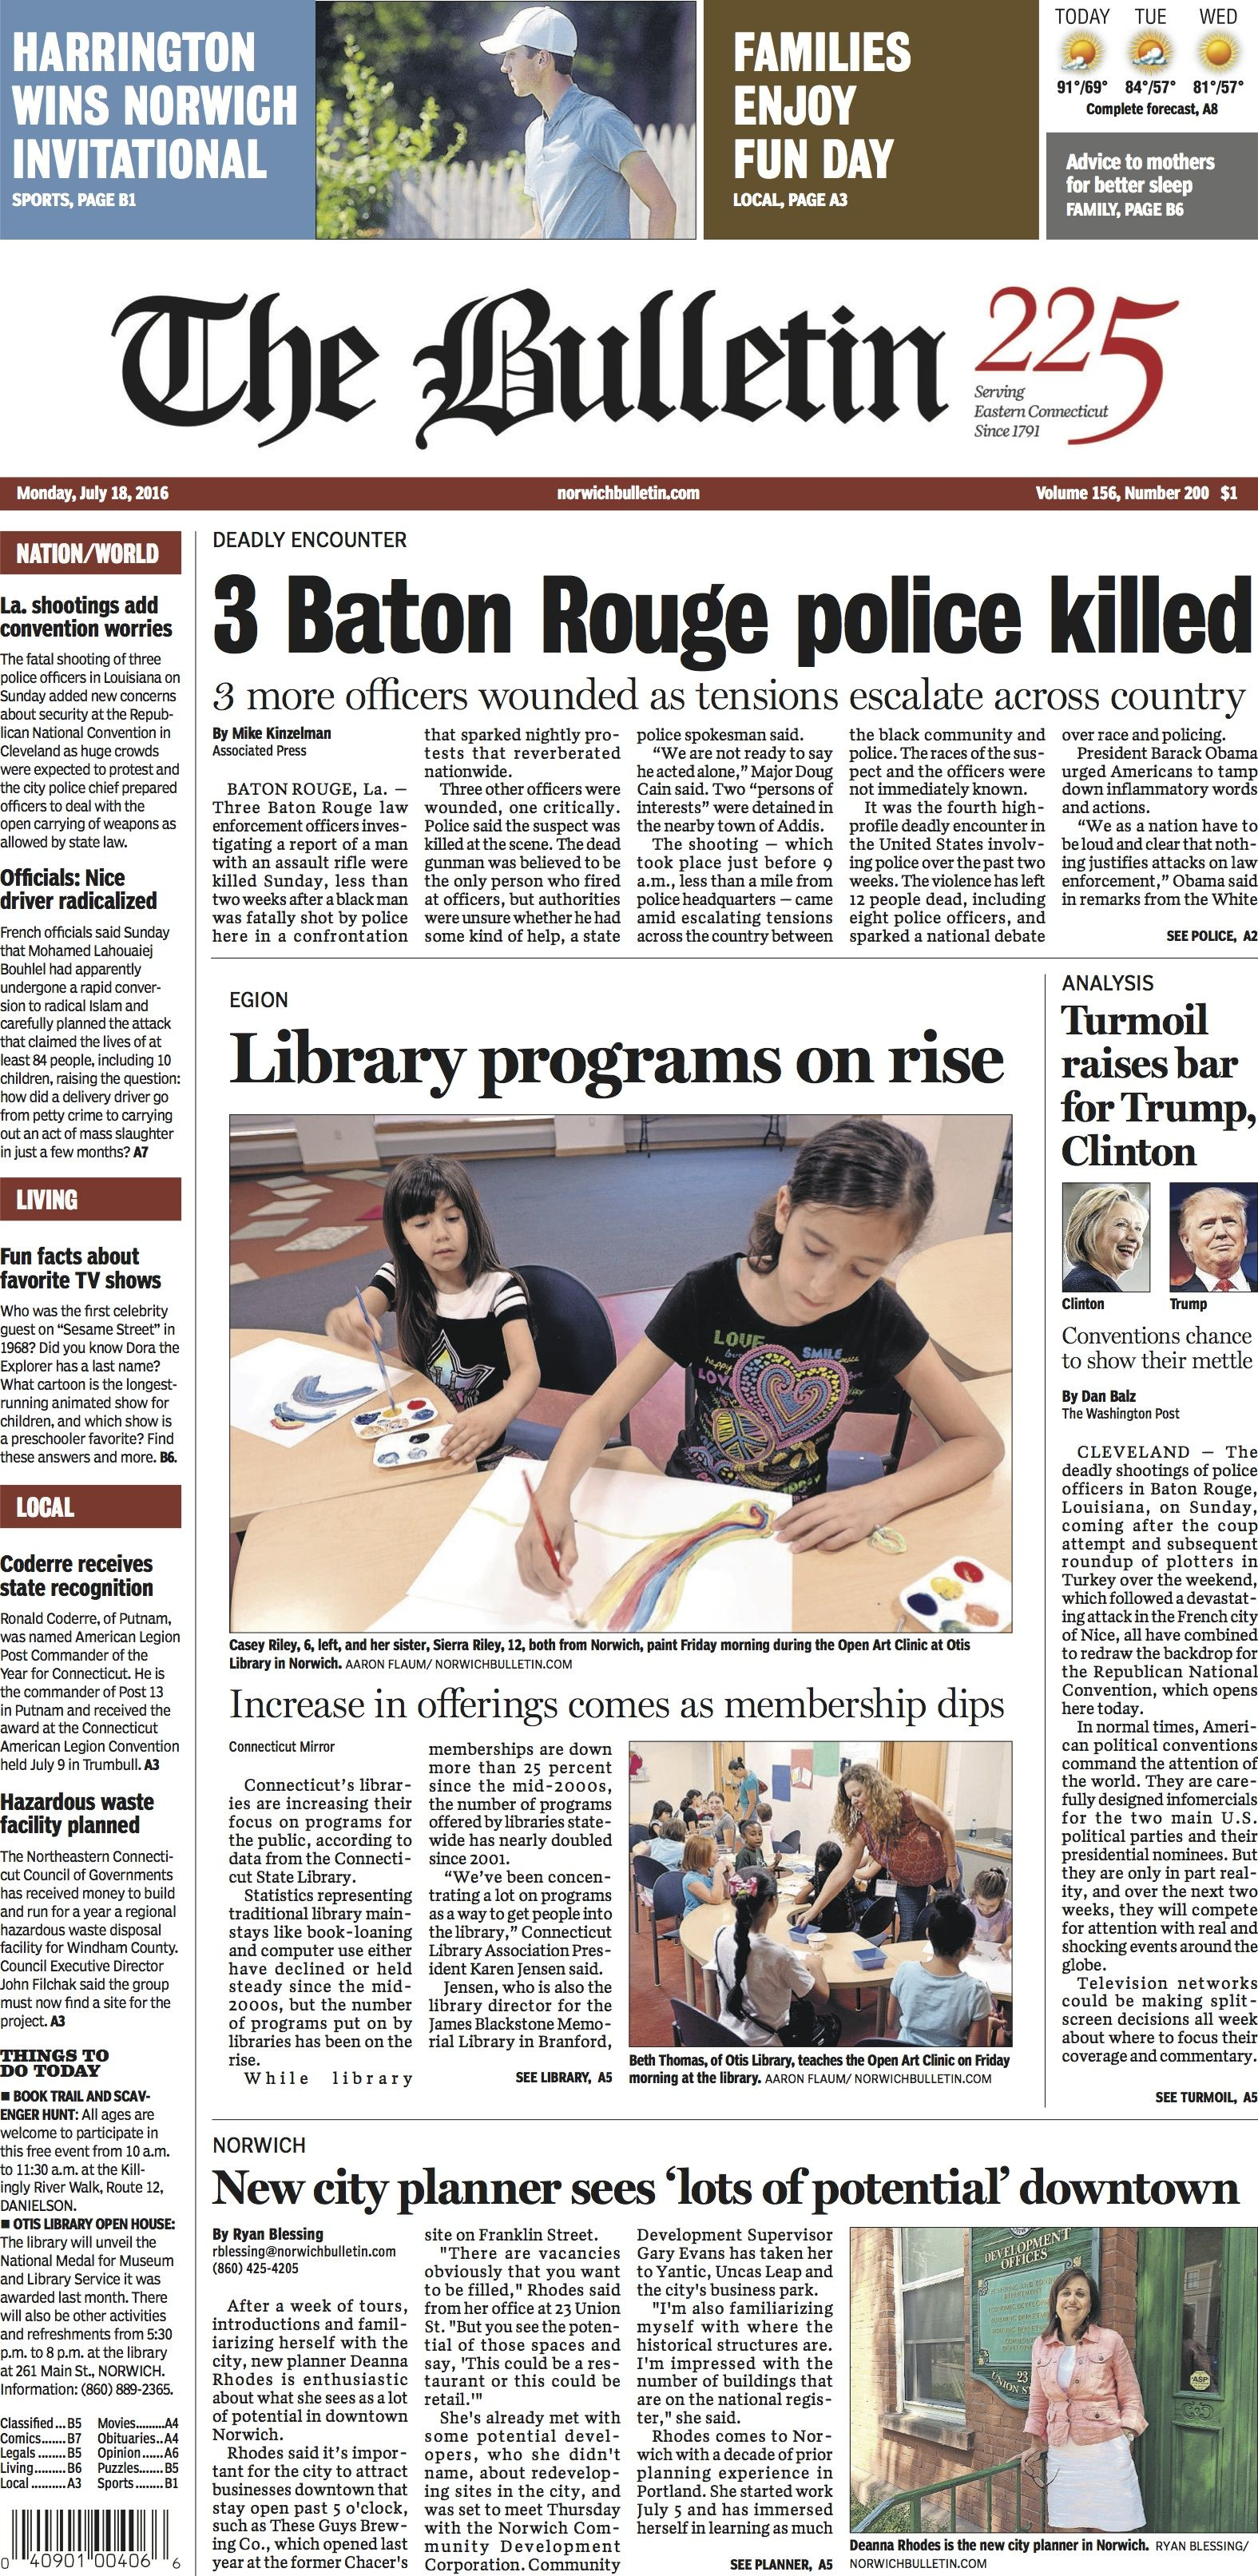 Pin By The Bulletin On The Bulletin Front Pages Baton Rouge Police Library Programs July 18th